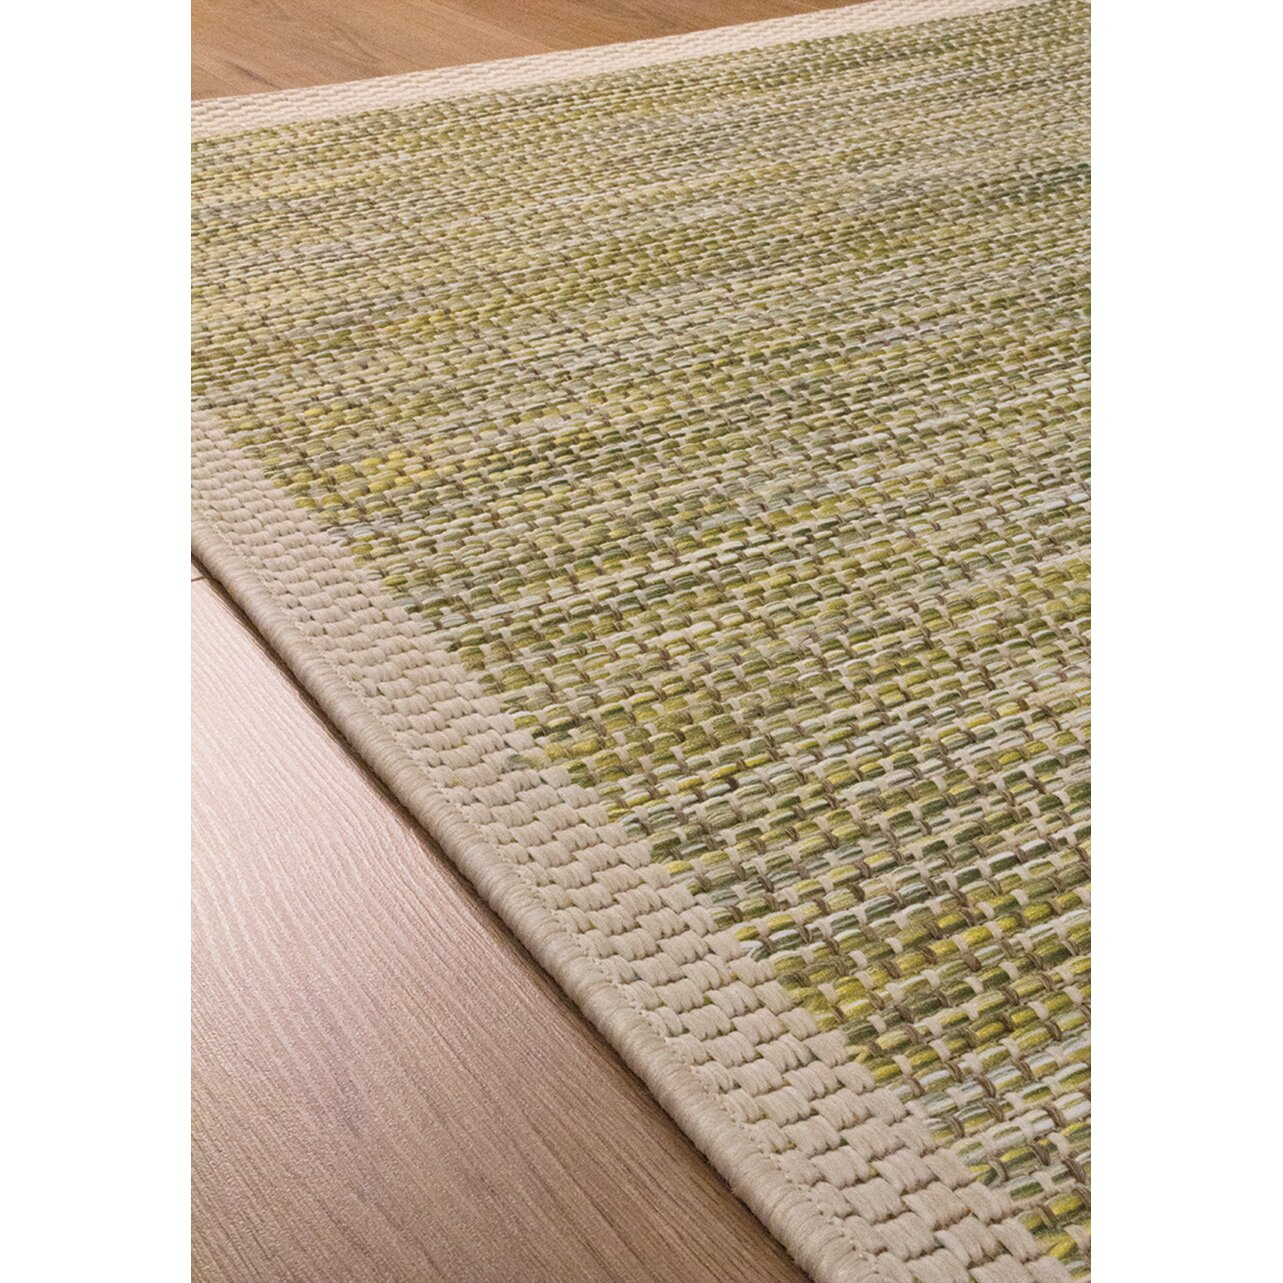 Kalora trellis border flatweave green beige indoor outdoor for Indoor outdoor carpet green